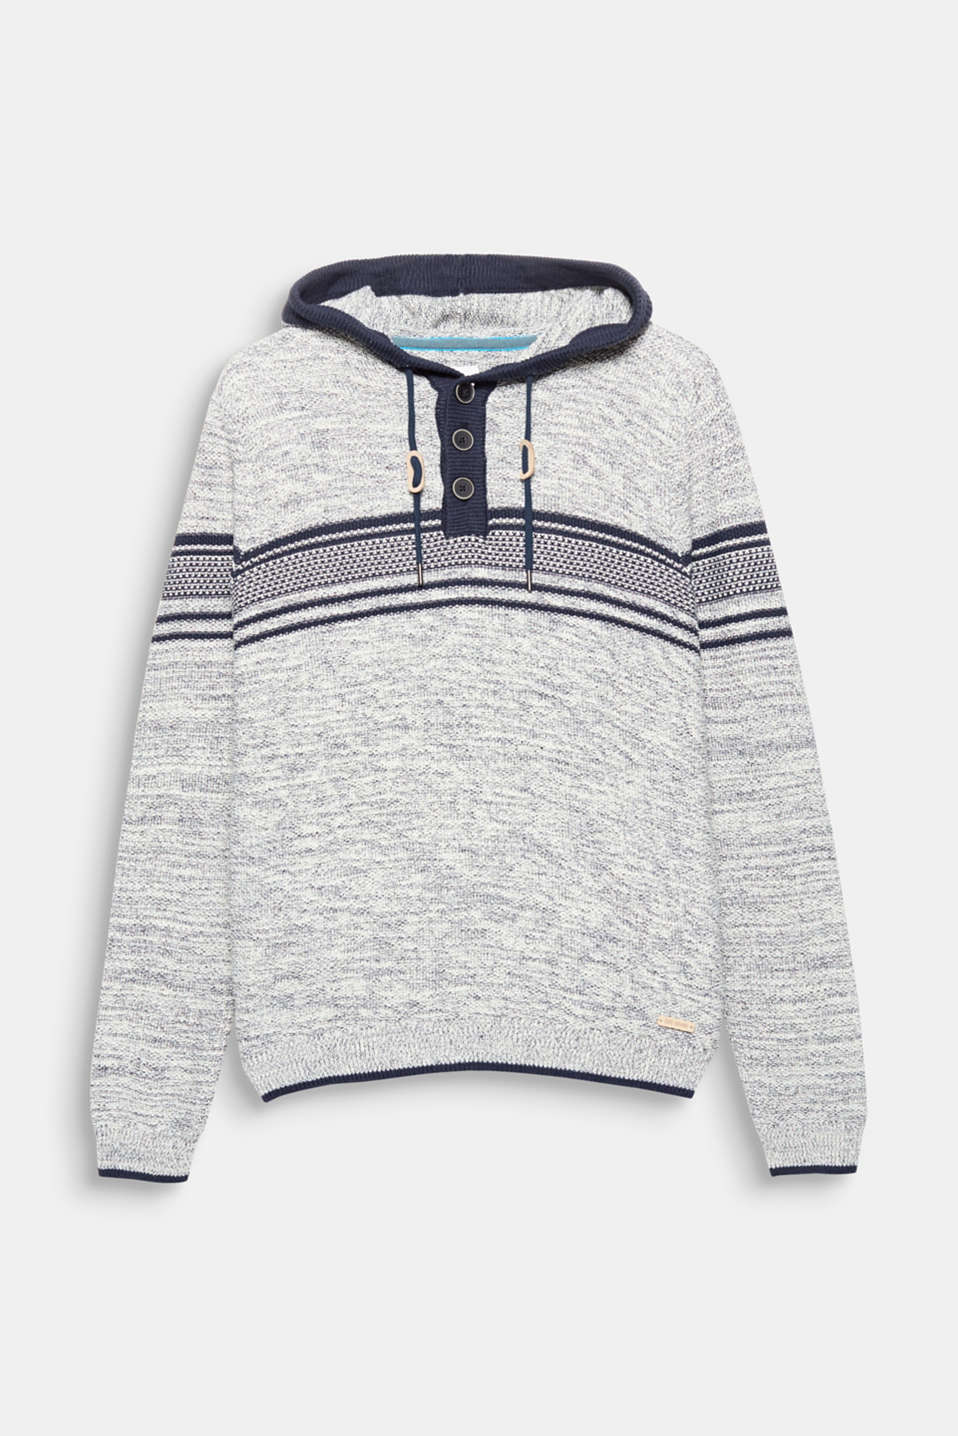 This knit hoodie in blended cotton is laid-back and sporty thanks to its melange texture, nautical stripes and casual hood.